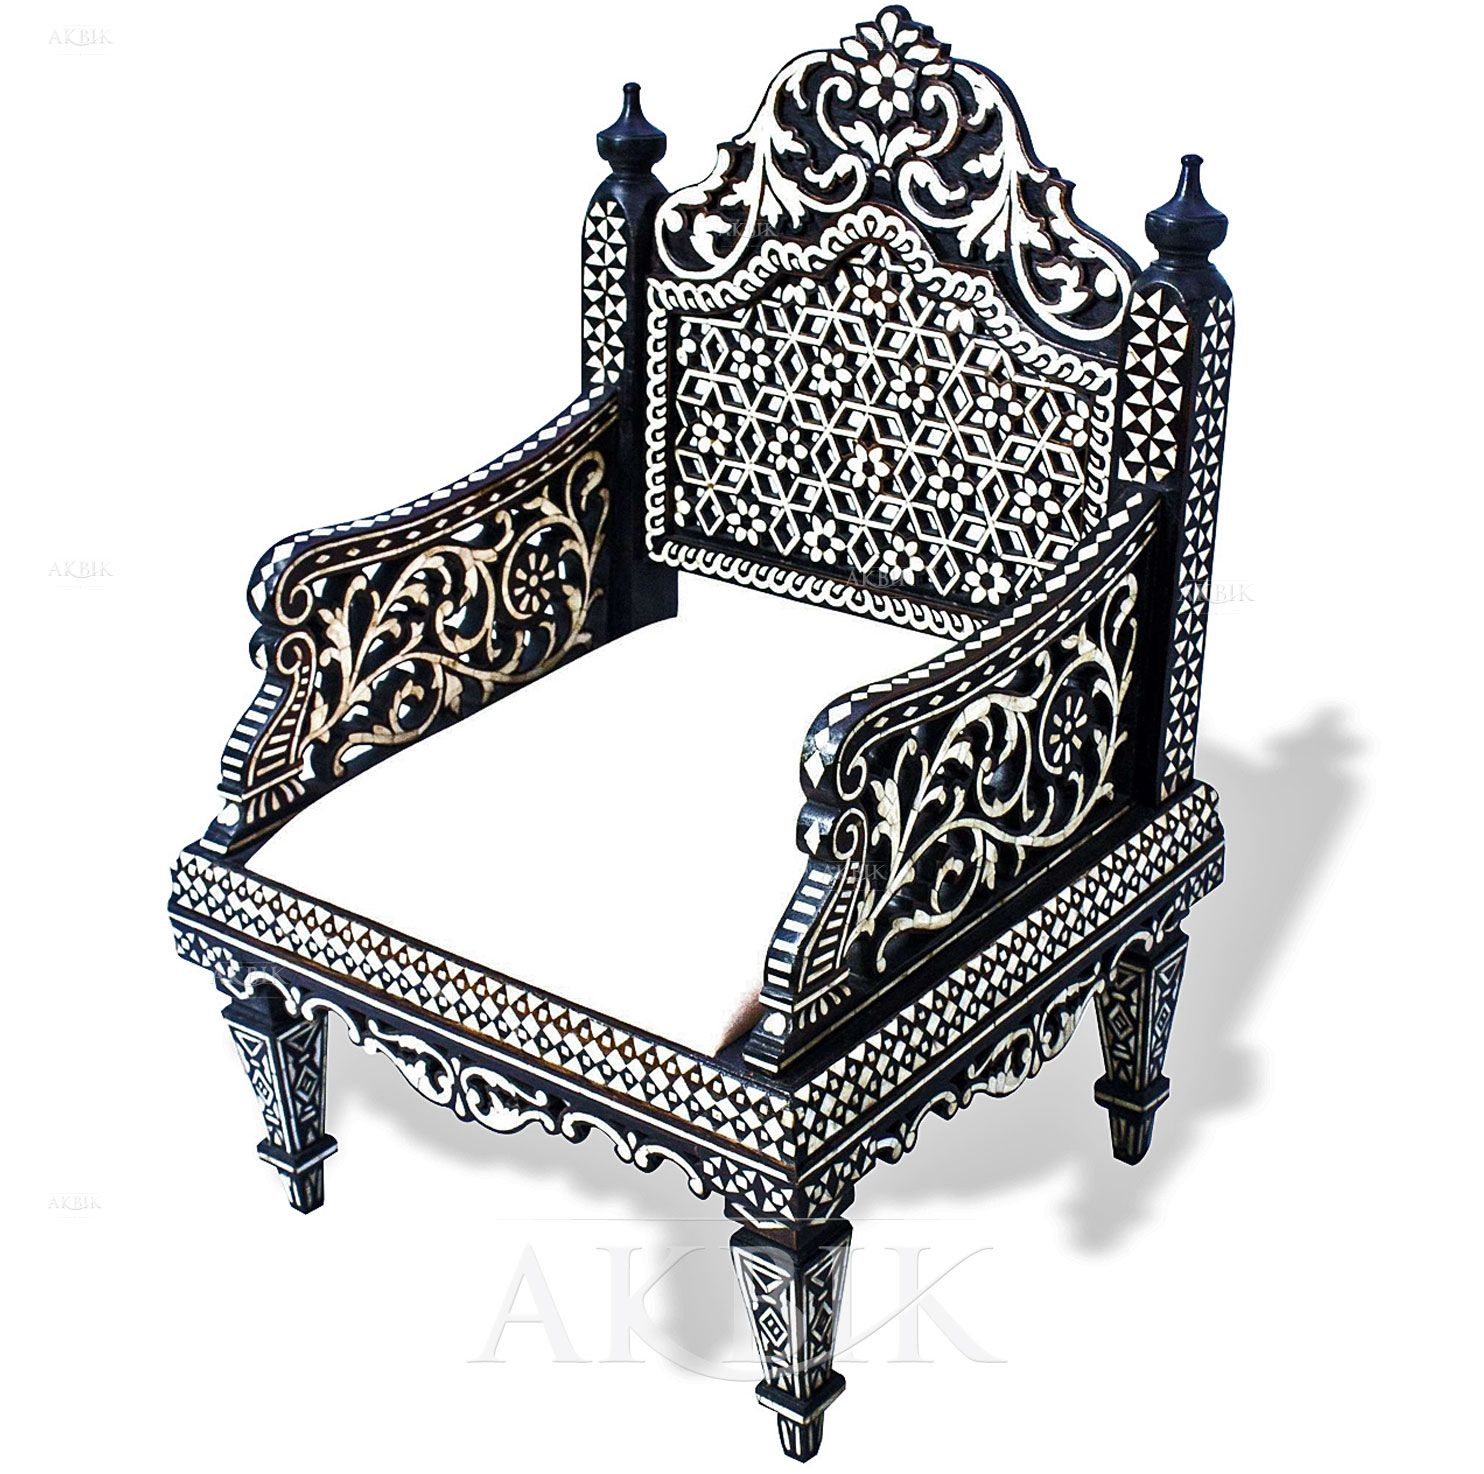 cheap moroccan furniture. 96121 - Arabian Moroccan Style Chair Inlaid With Mother Of Pearl Cheap Furniture L